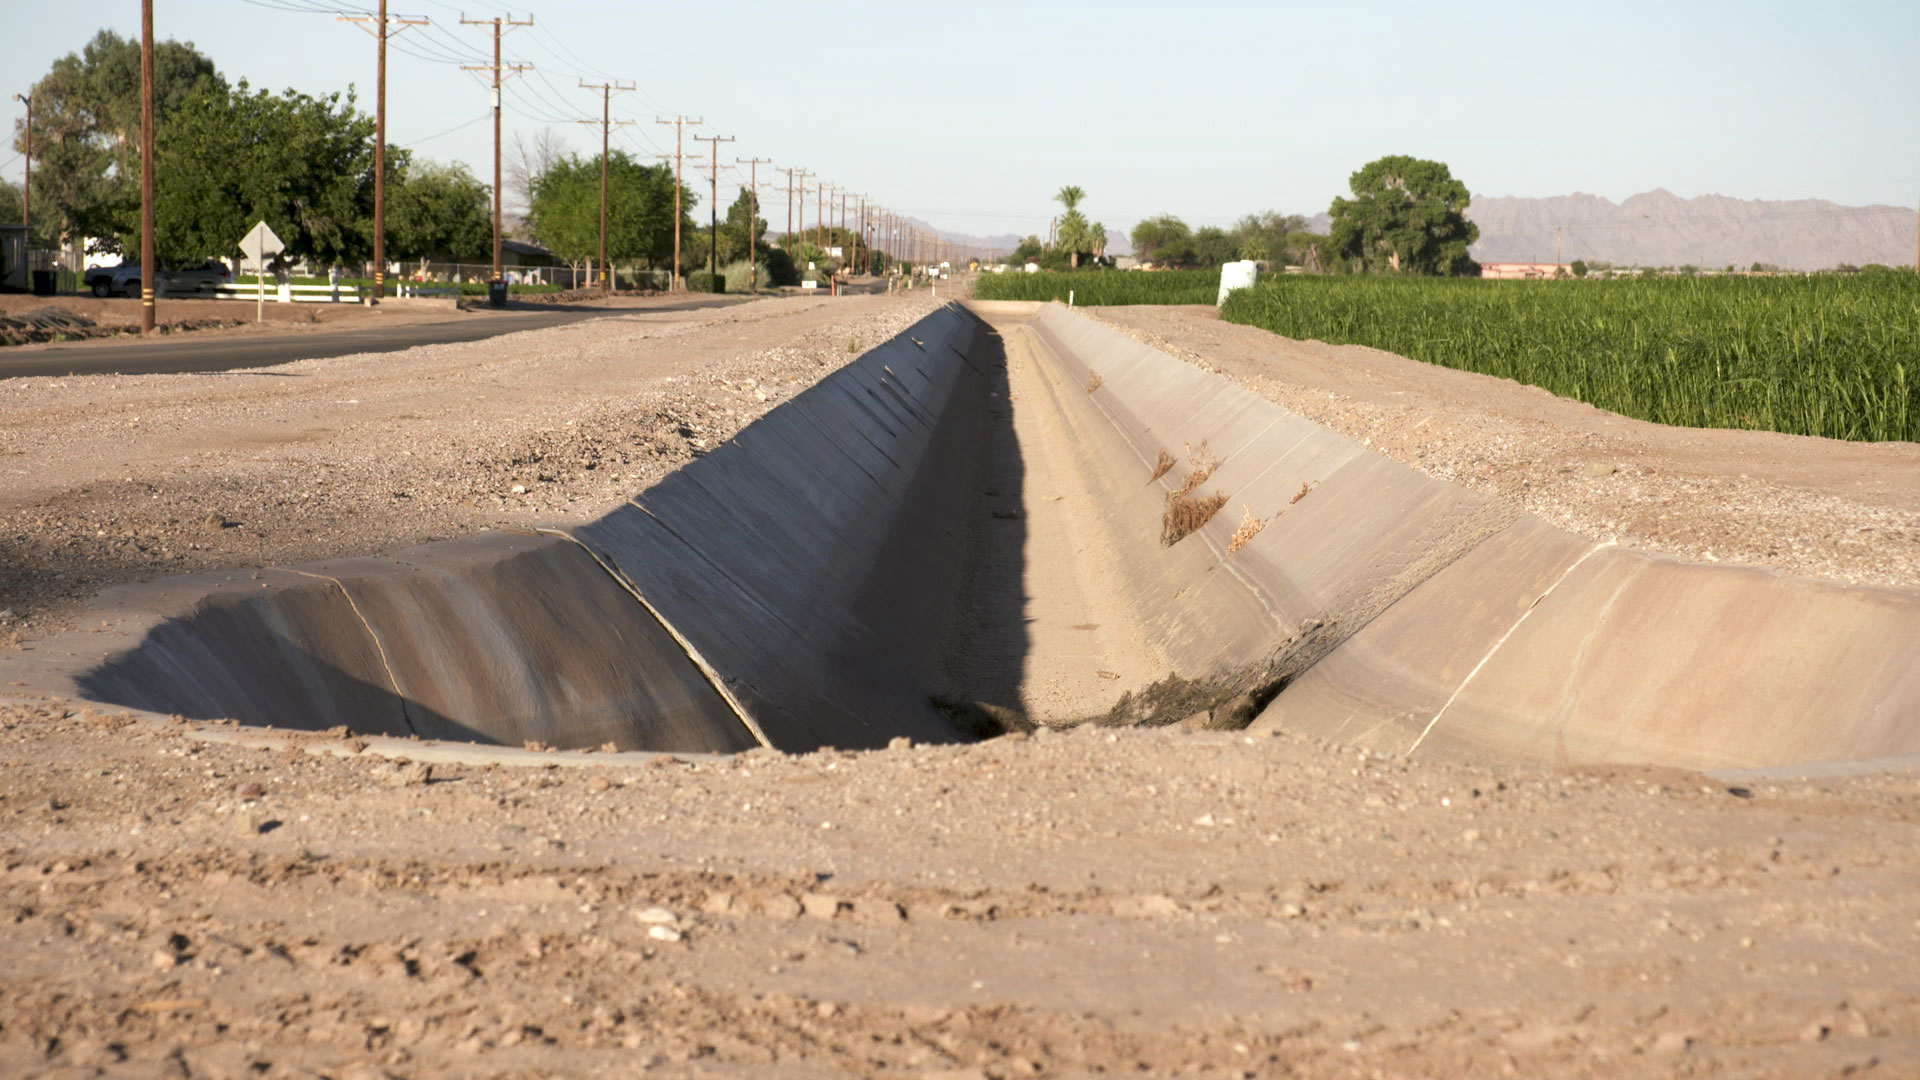 A dry irrigation canal in Yuma. June 2020.